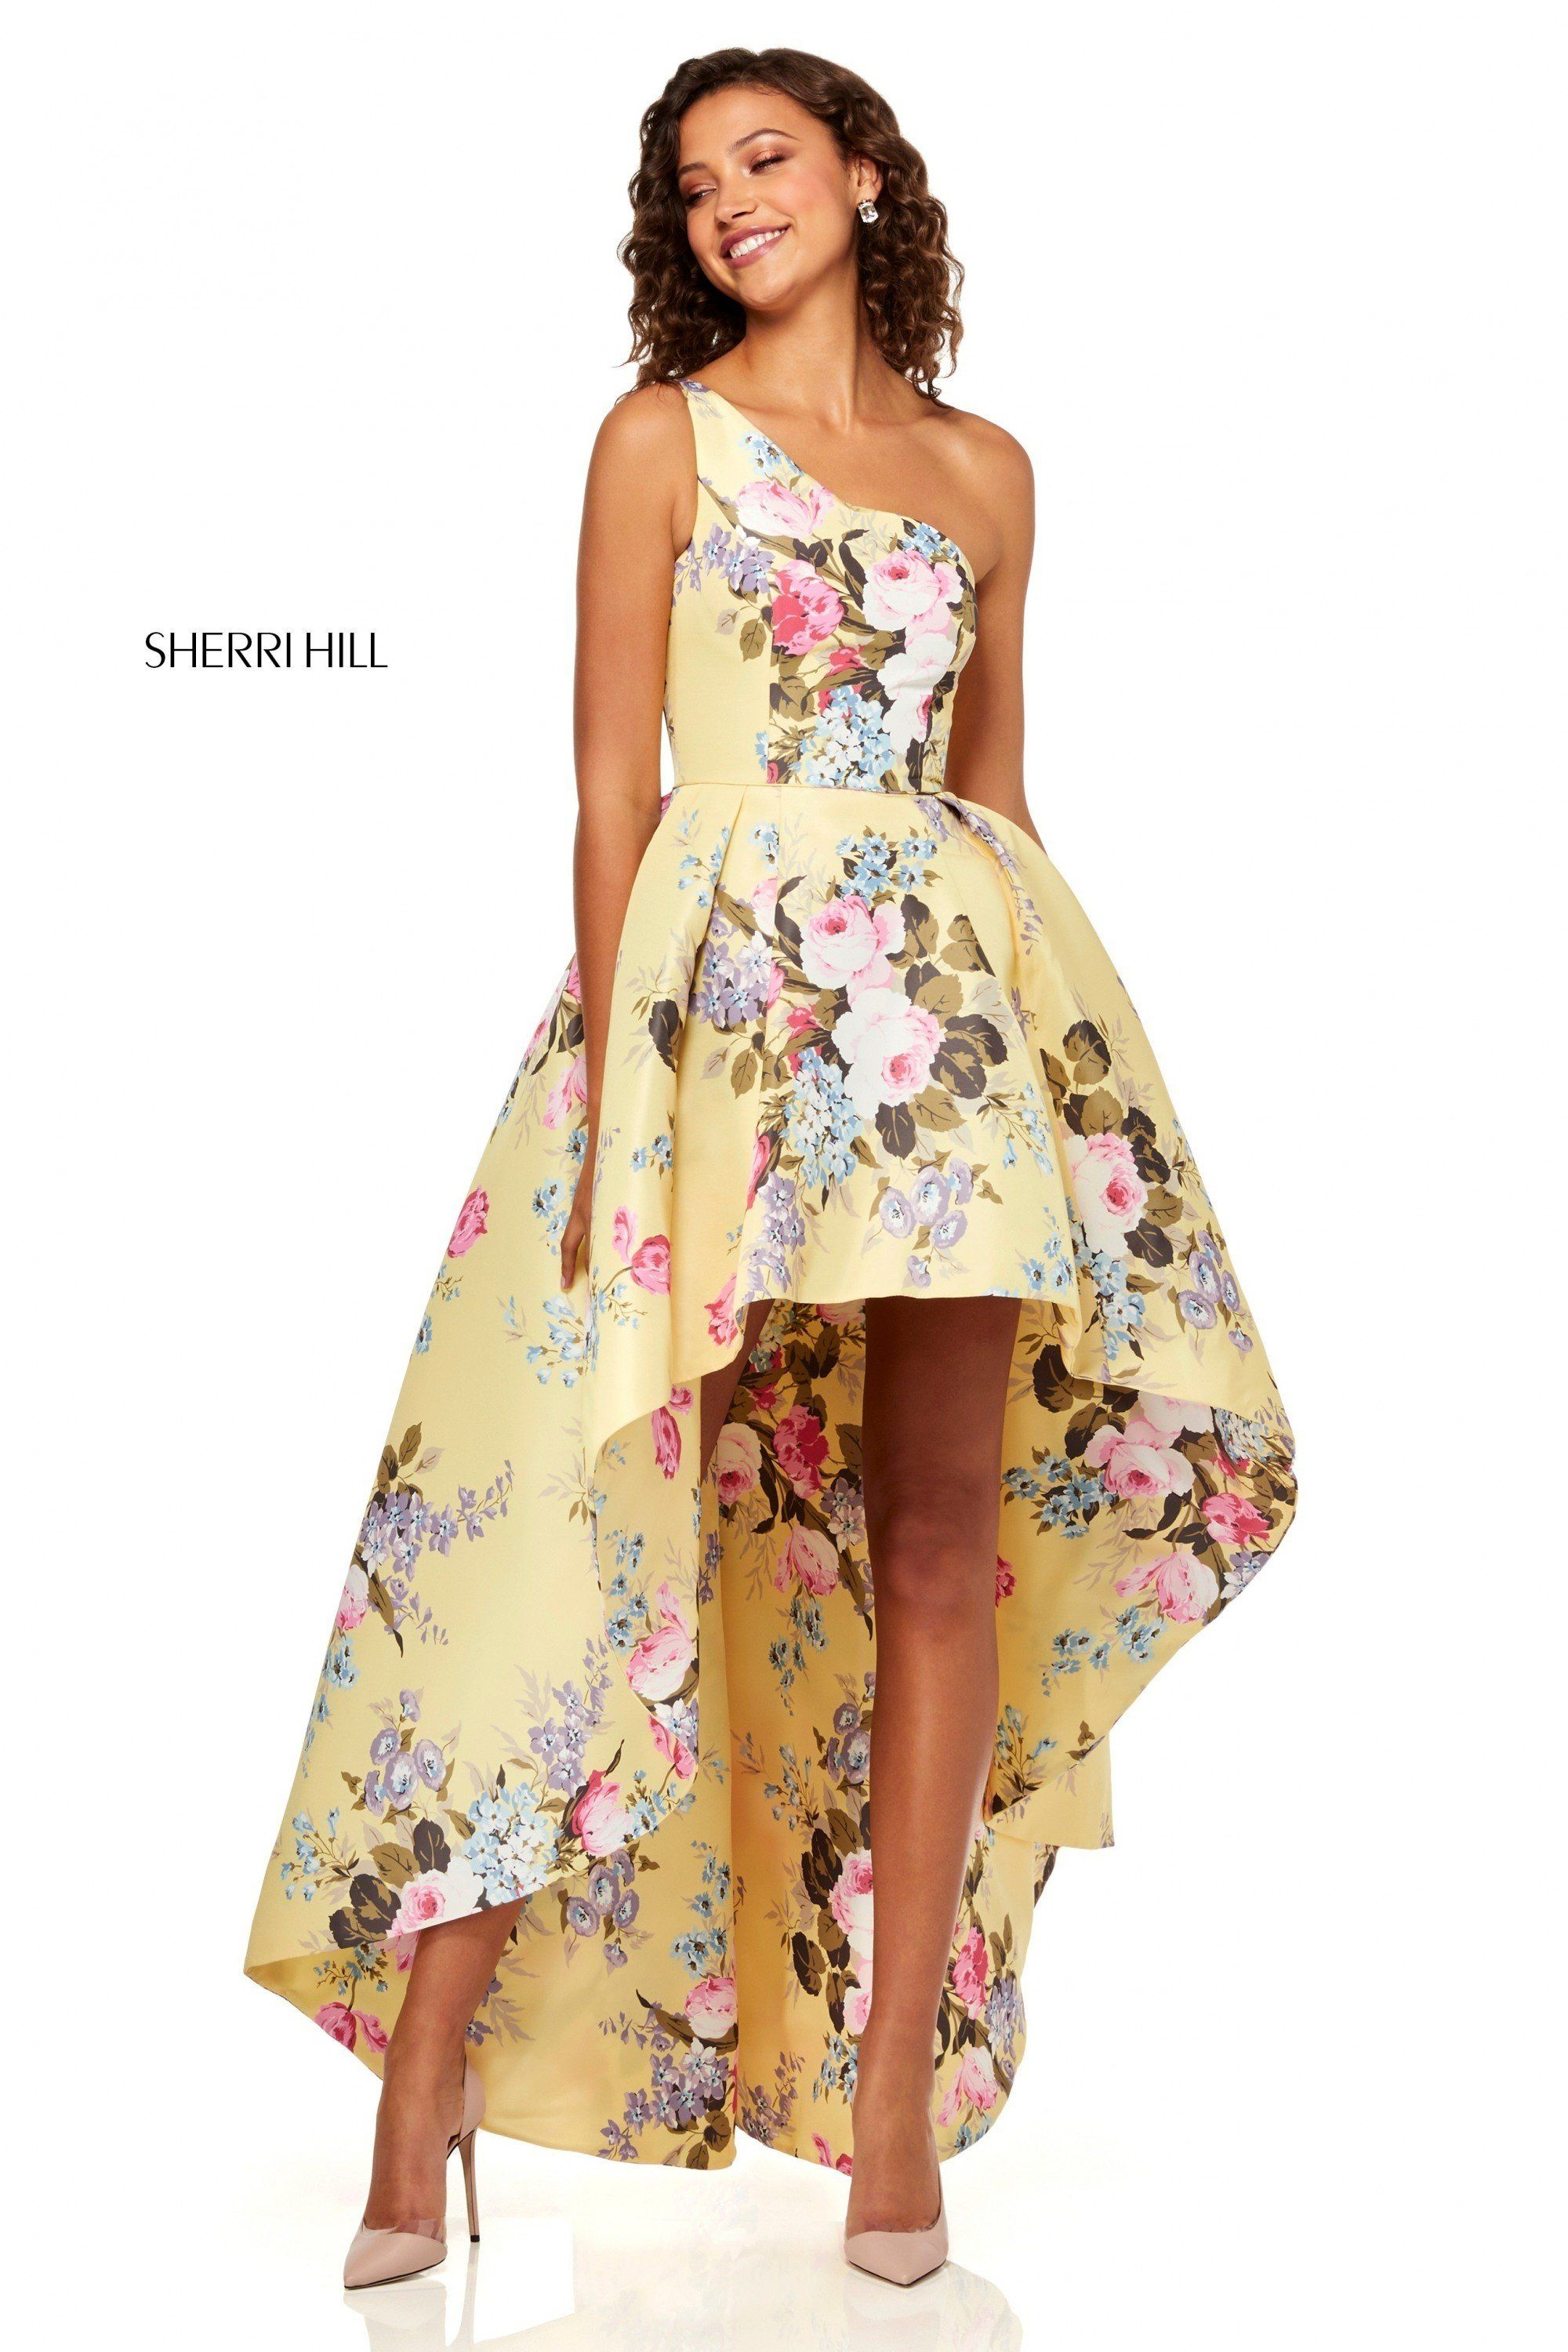 8ab670ad62 Sherri Hill 52489 One-Shoulder Floral Print Dress in 2019